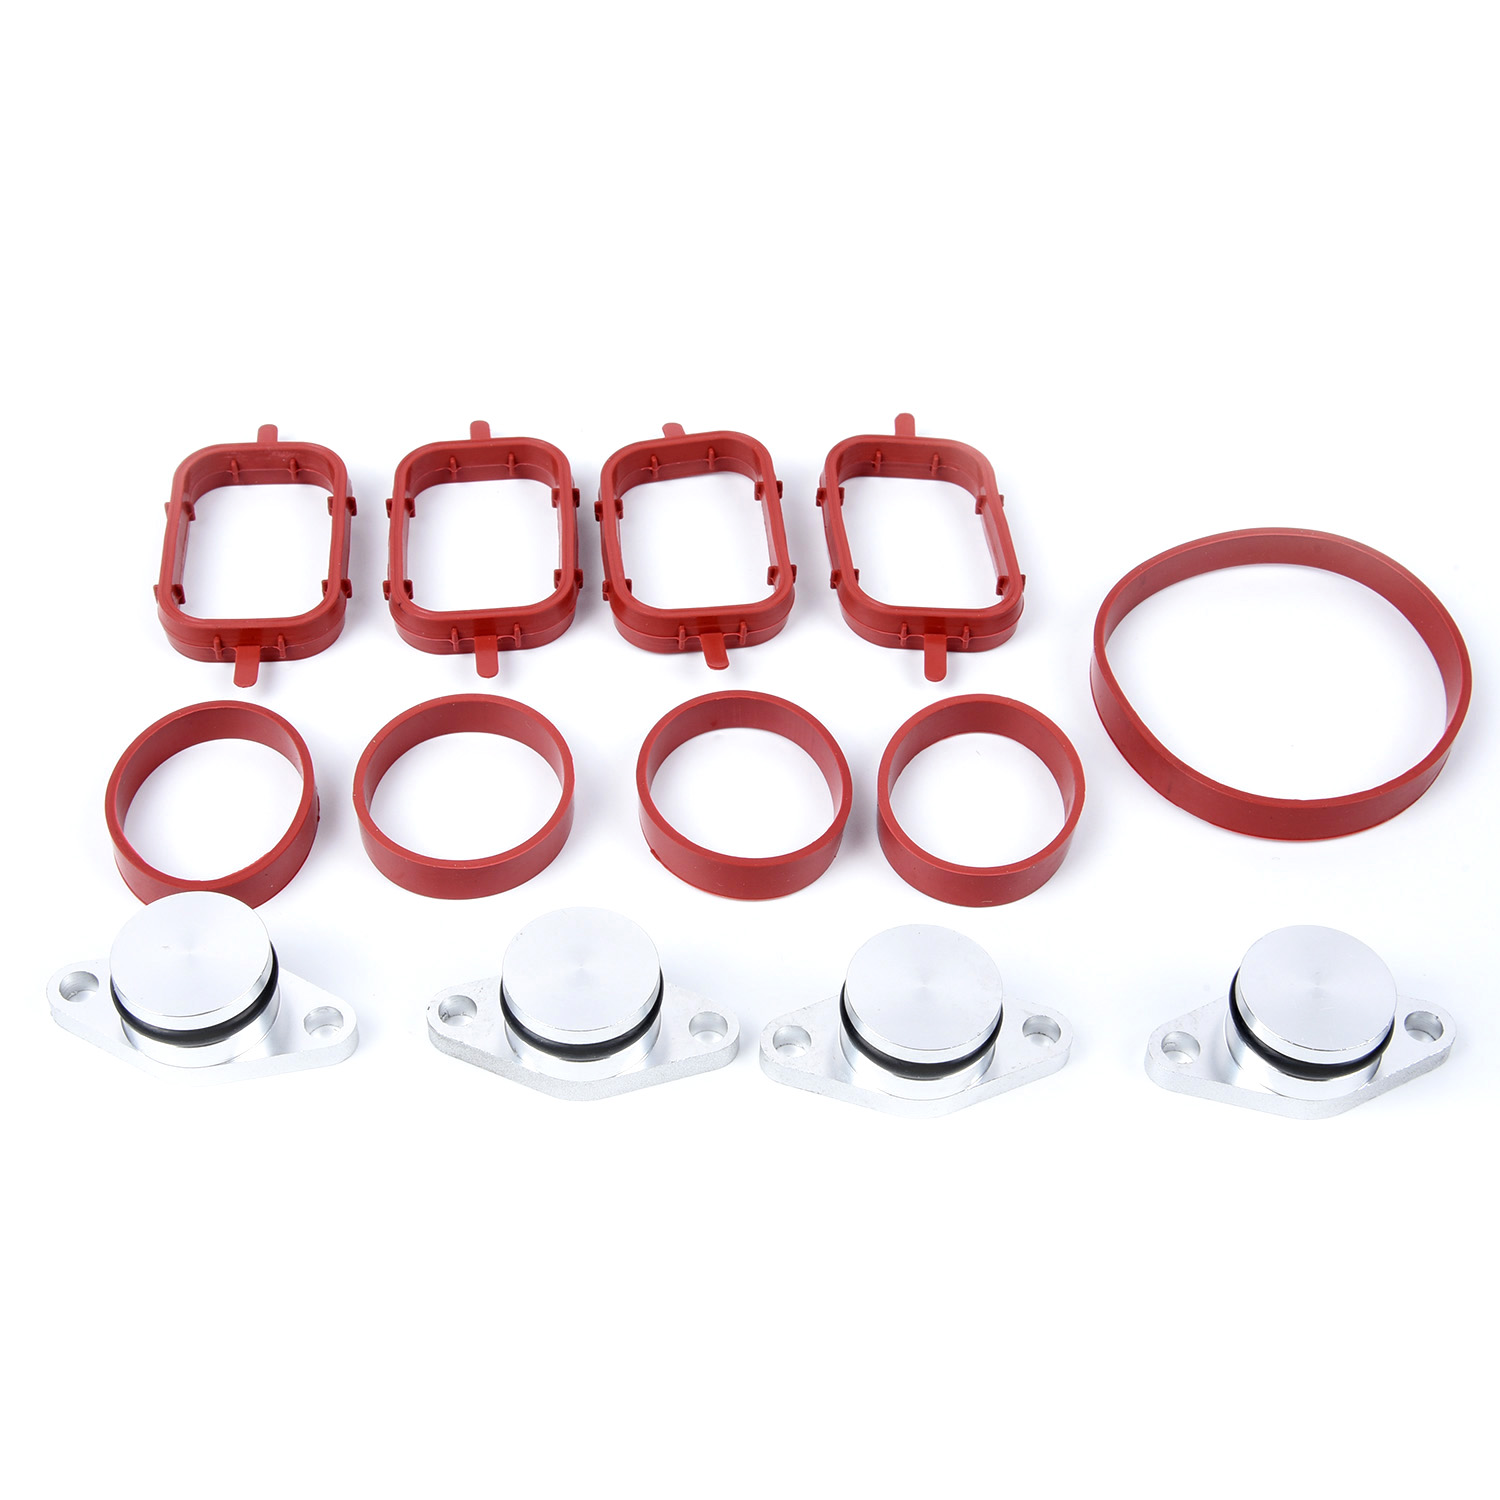 4 Pcs 22mm Diesel Swirl Flap Blanks Bungs Intake Gaskets Kit For BMW M47/E46 320d 330d 525d 530d SI-A0136 Car Accessories image